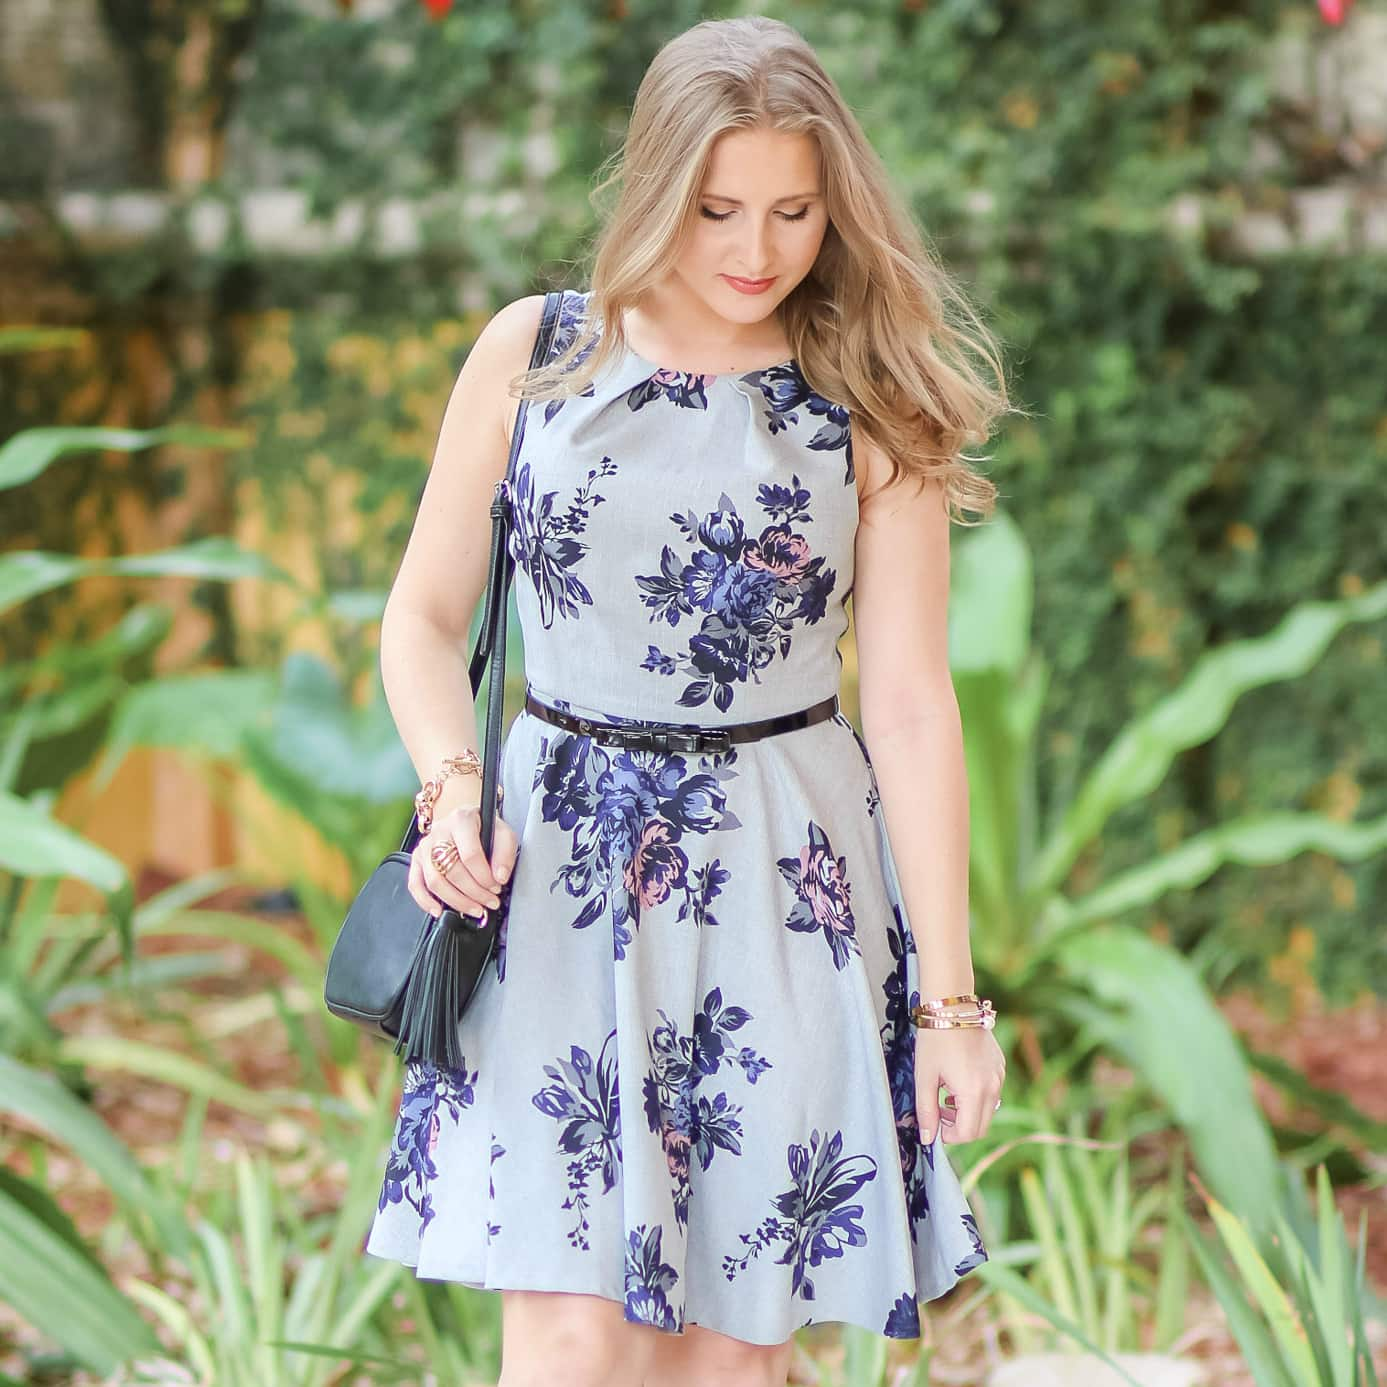 I'm loving this gray and floral fit and flare dress from Kohl's! It's so classy and perfect for Easter!